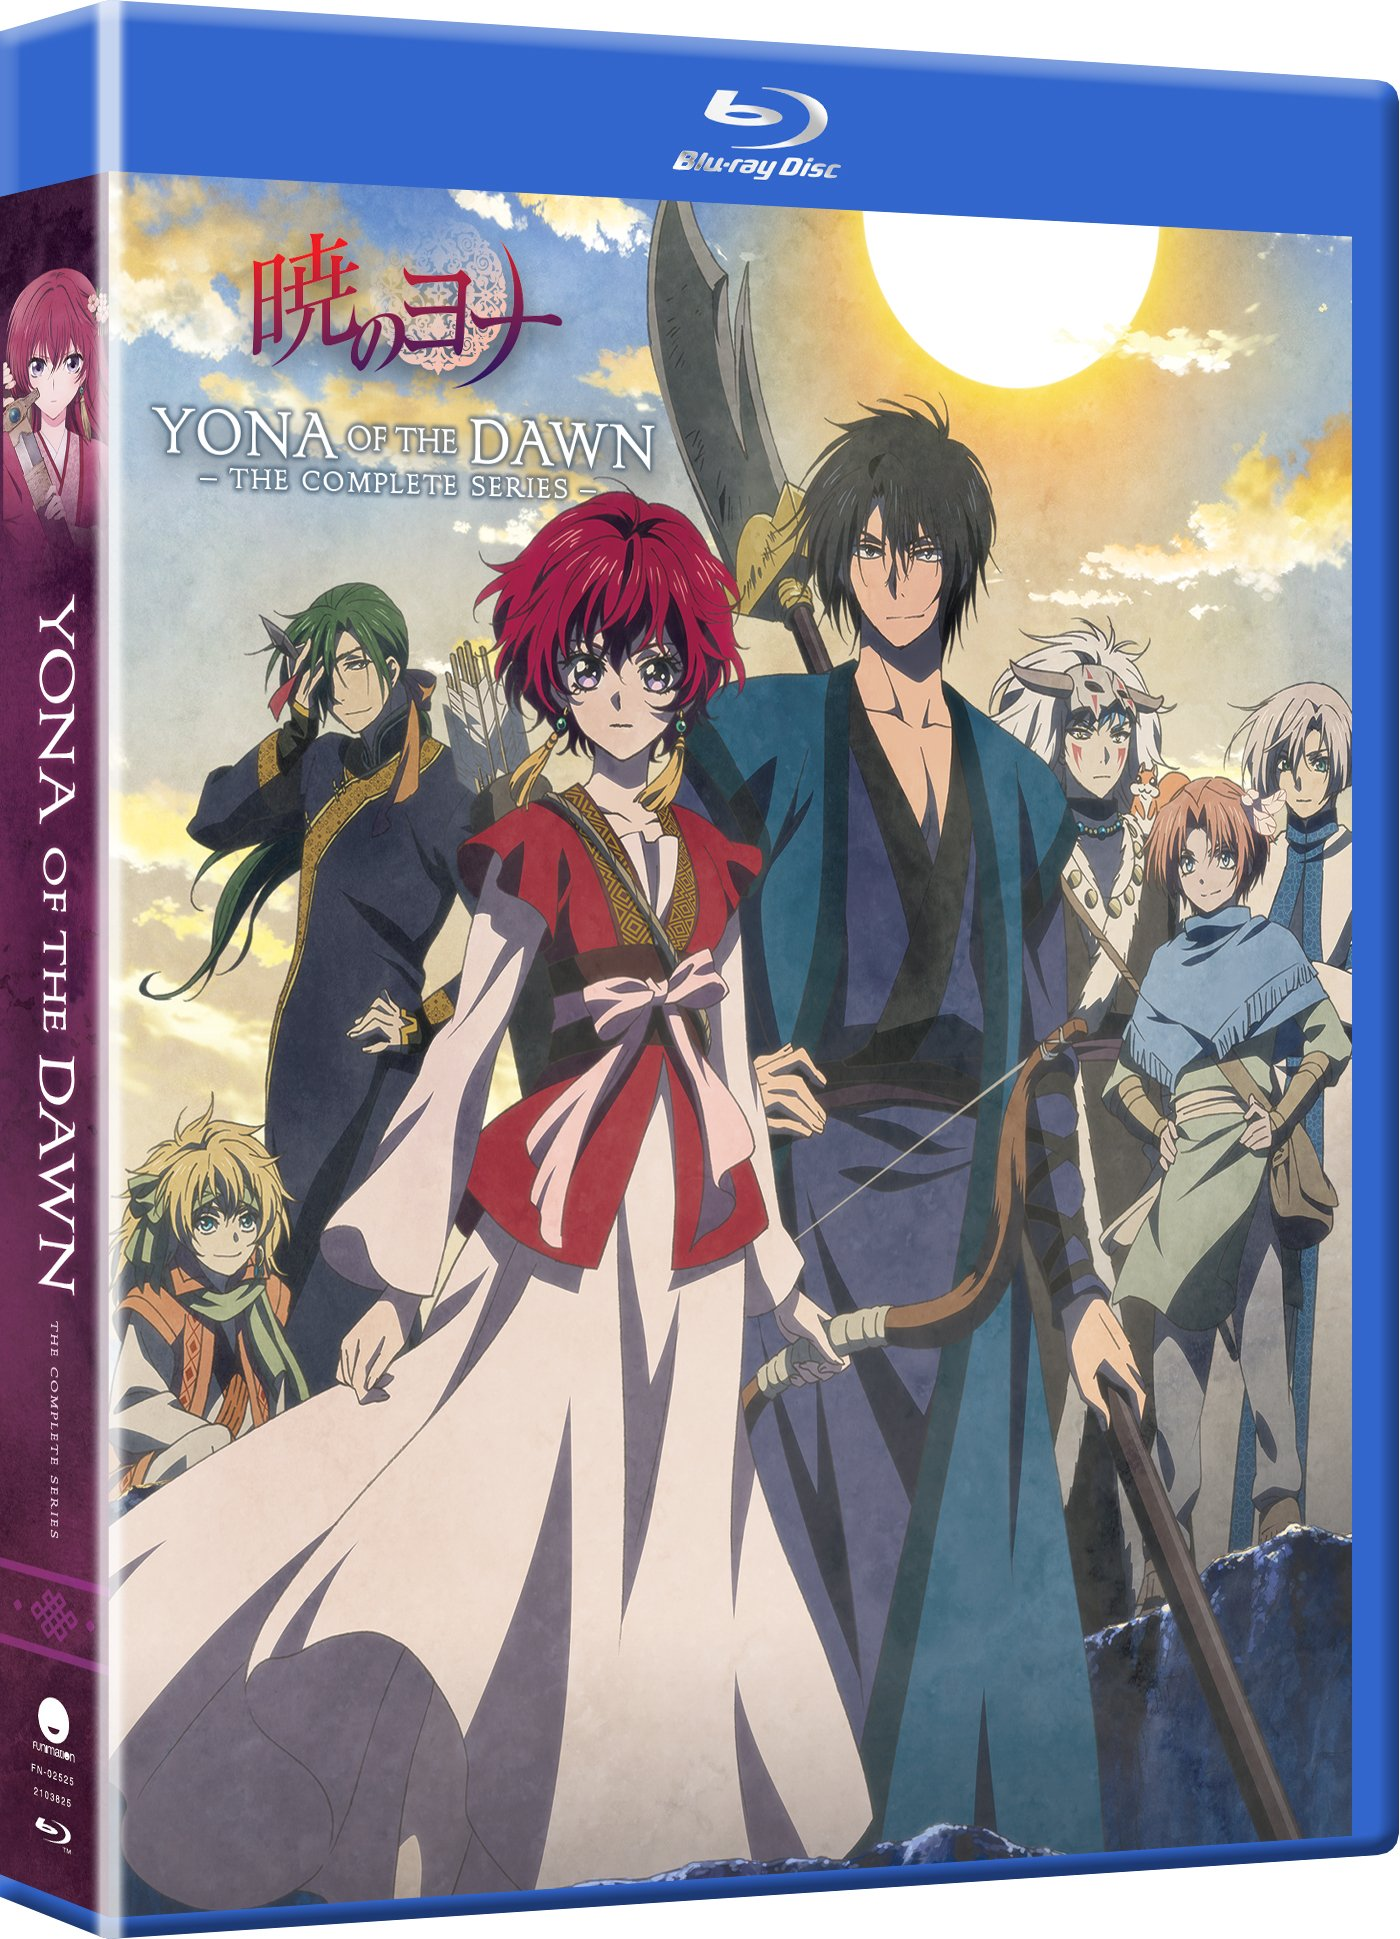 Blu-ray : Yona Of The Dawn: The Complete Series (Boxed Set, Subtitled, Snap Case, Slipsleeve Packaging, Digital Copy)